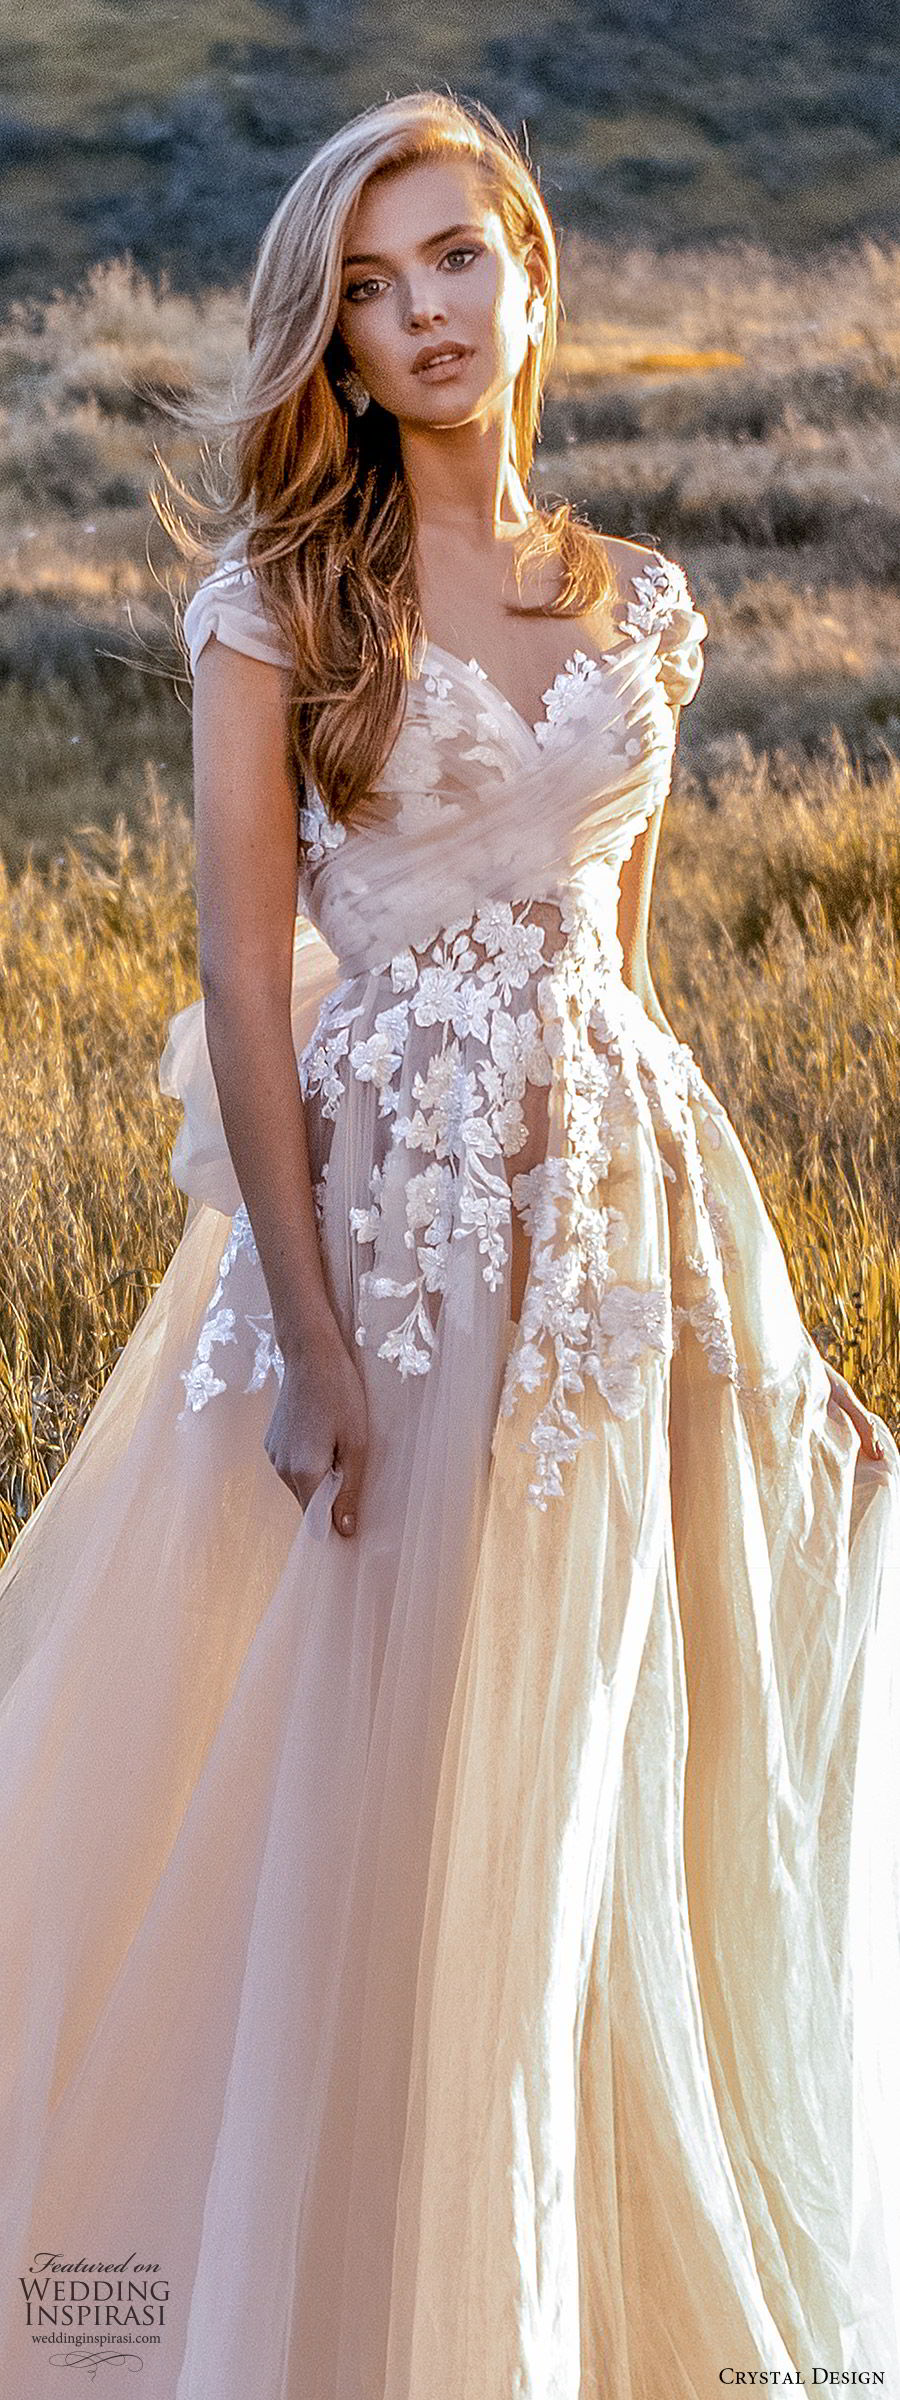 crystal design 2020 couture bridal cap sleeves sweetheart neckline embellished bodice a line ball gown wedding dress (7) blush color romantic princess keyhole back chapel train lv